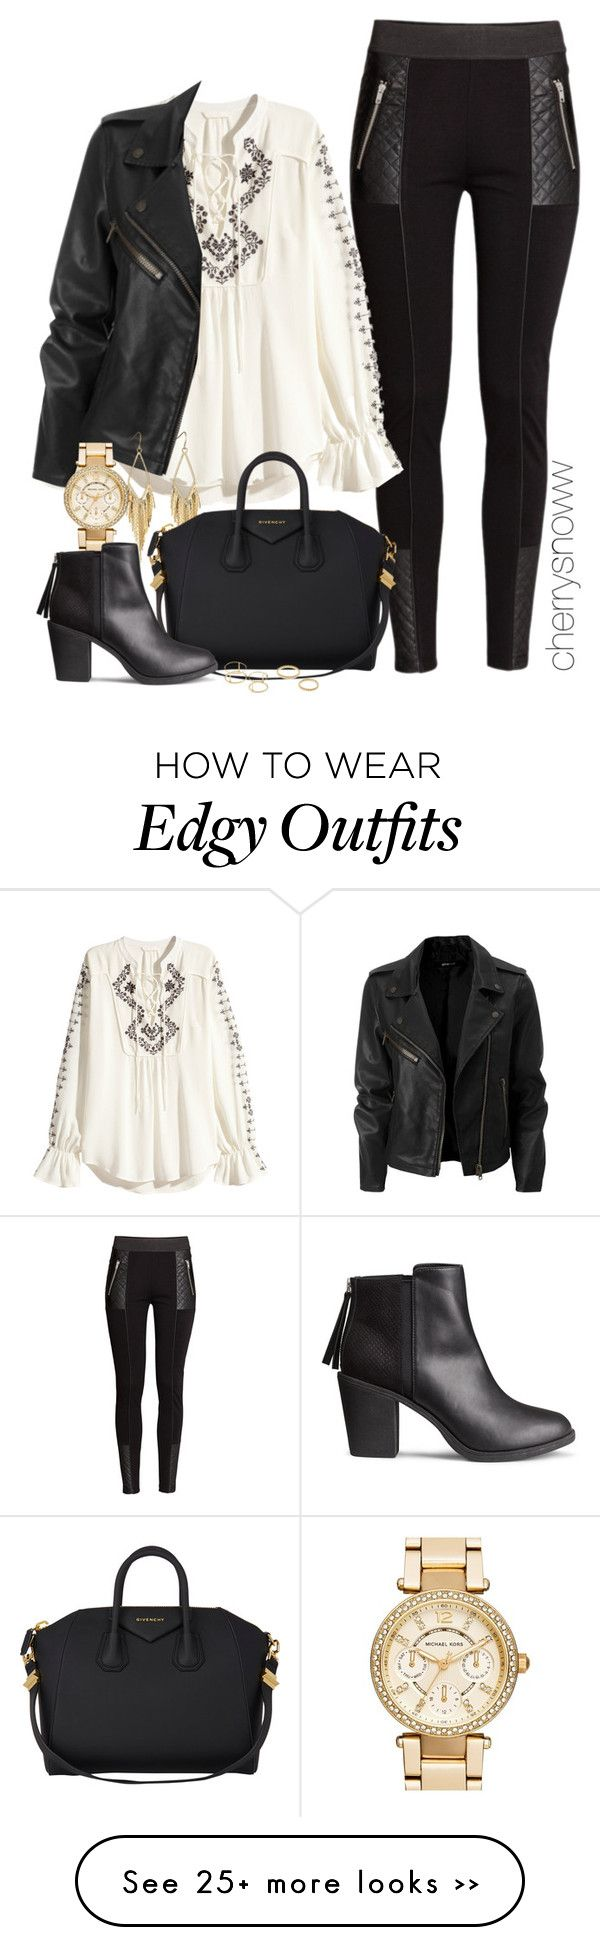 25+ best ideas about Edgy fall outfits on Pinterest